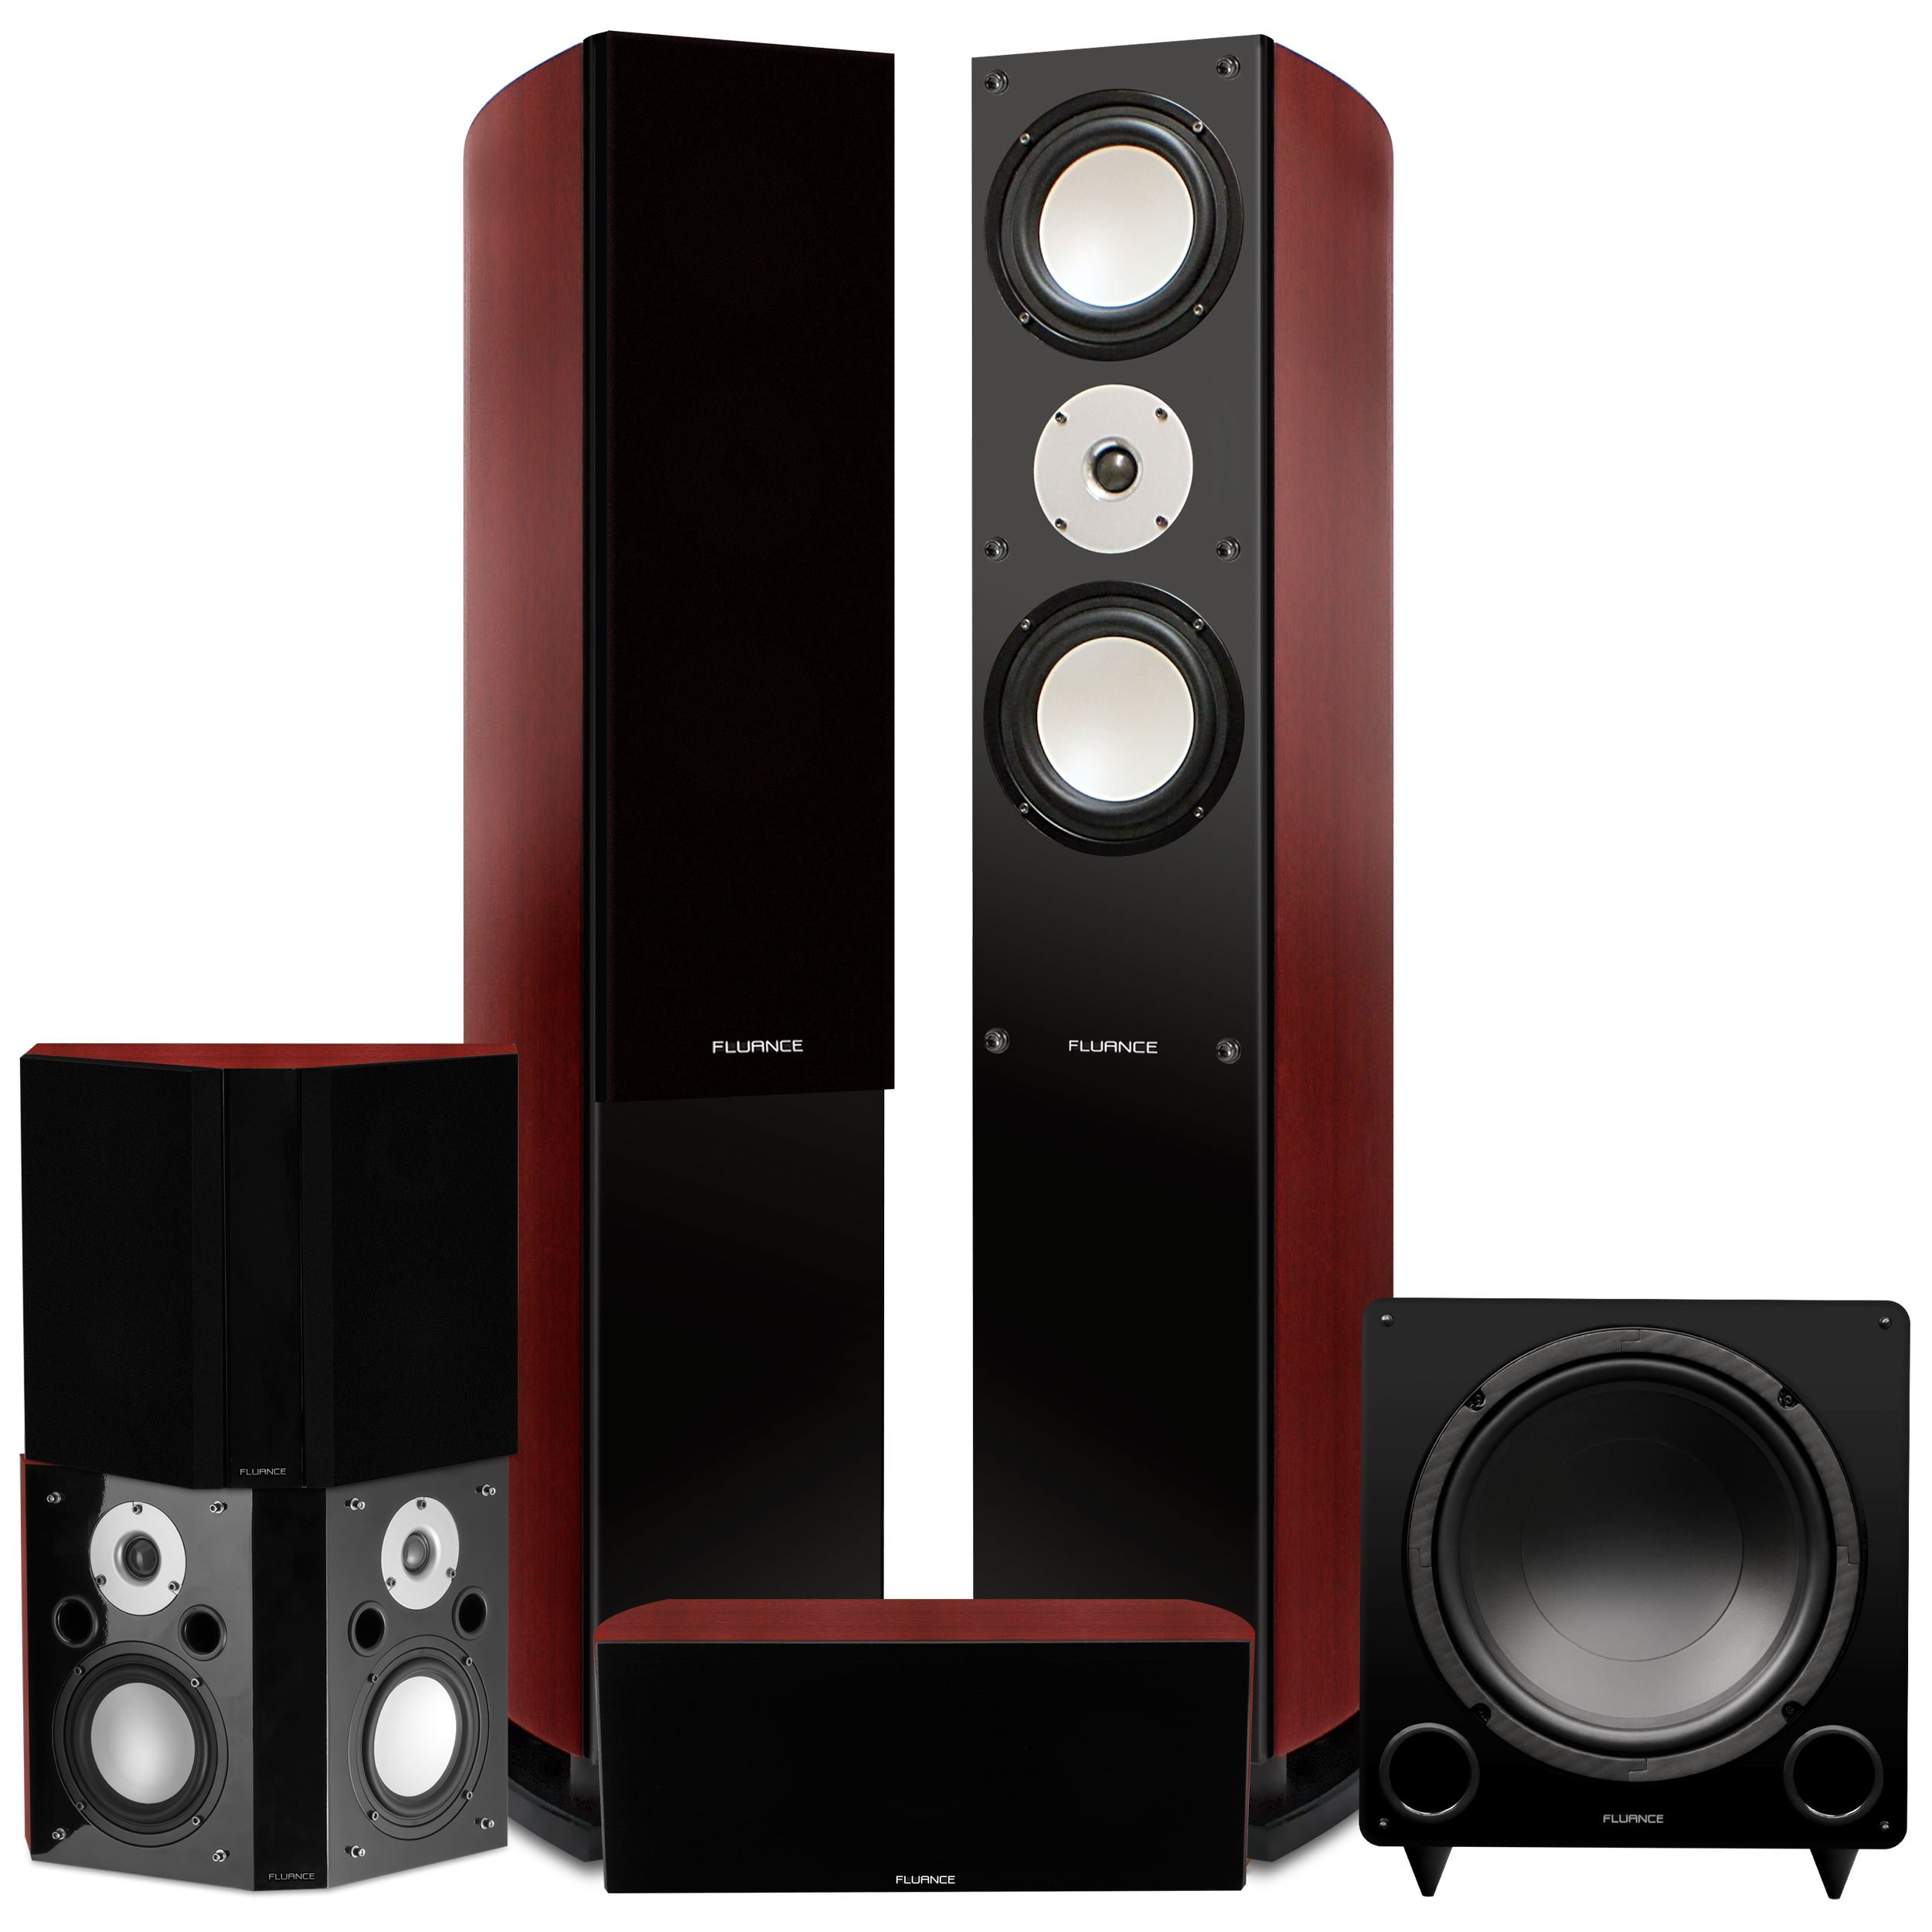 Fluance Reference Series Surround Sound Home Theater 5.1 Channel Speaker System including Three-way Floorstanding Towers, Center Channel, Bipolar Speakers and DB12 Subwoofer – Mahogany (XL51MB)